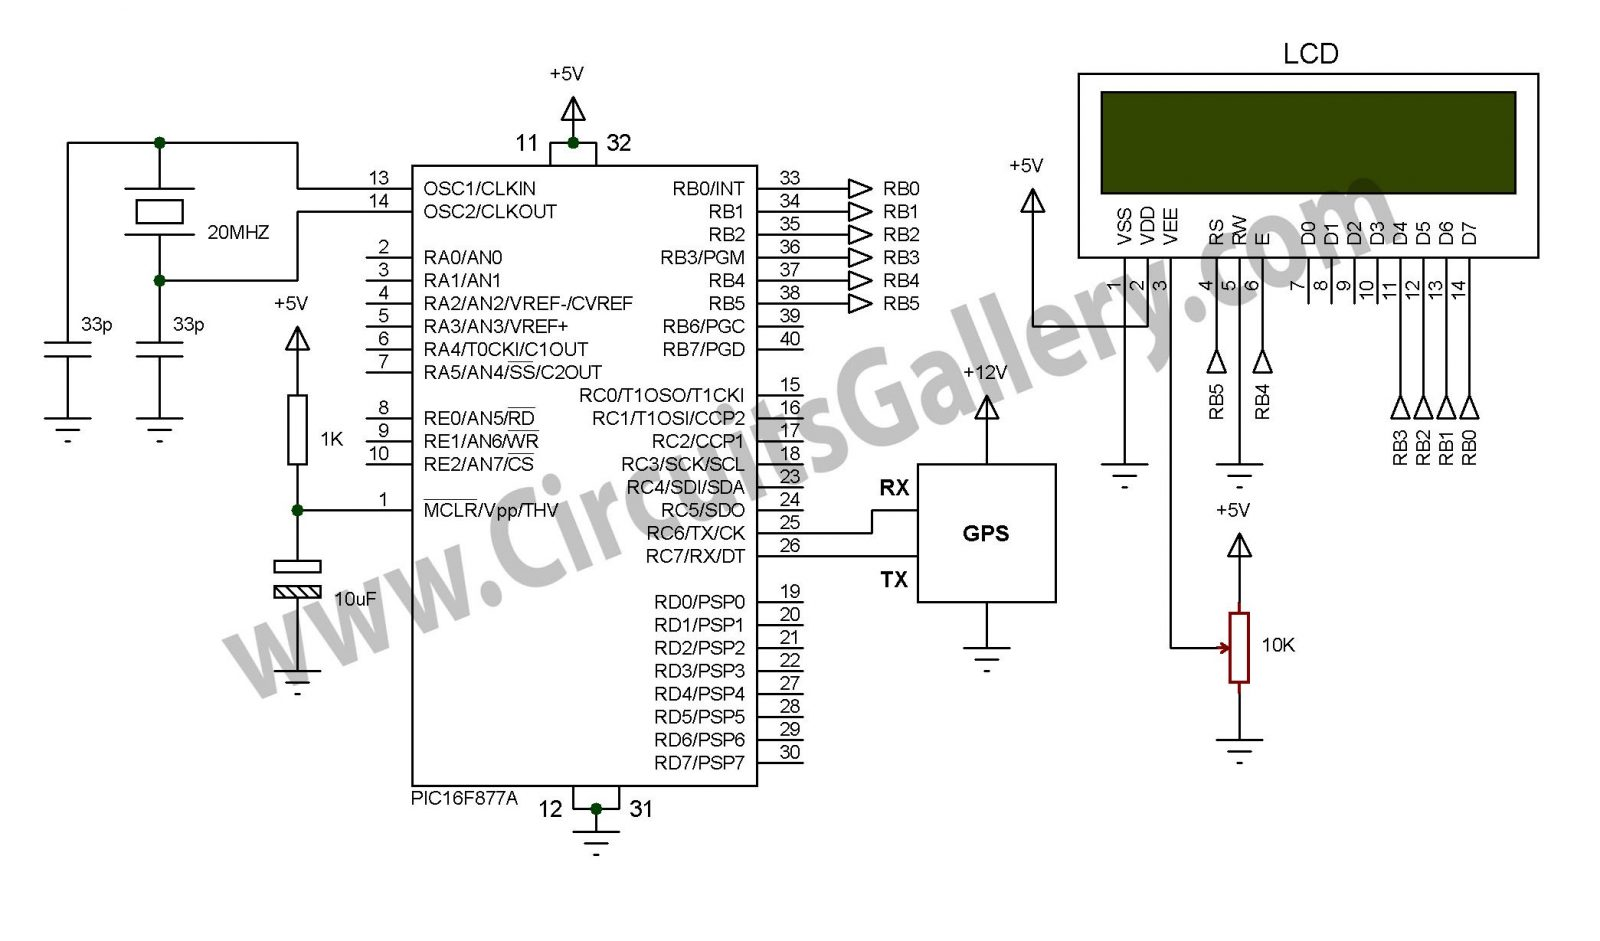 Simple Digital Gps Speedometer Using Pic16f877a With Lcd